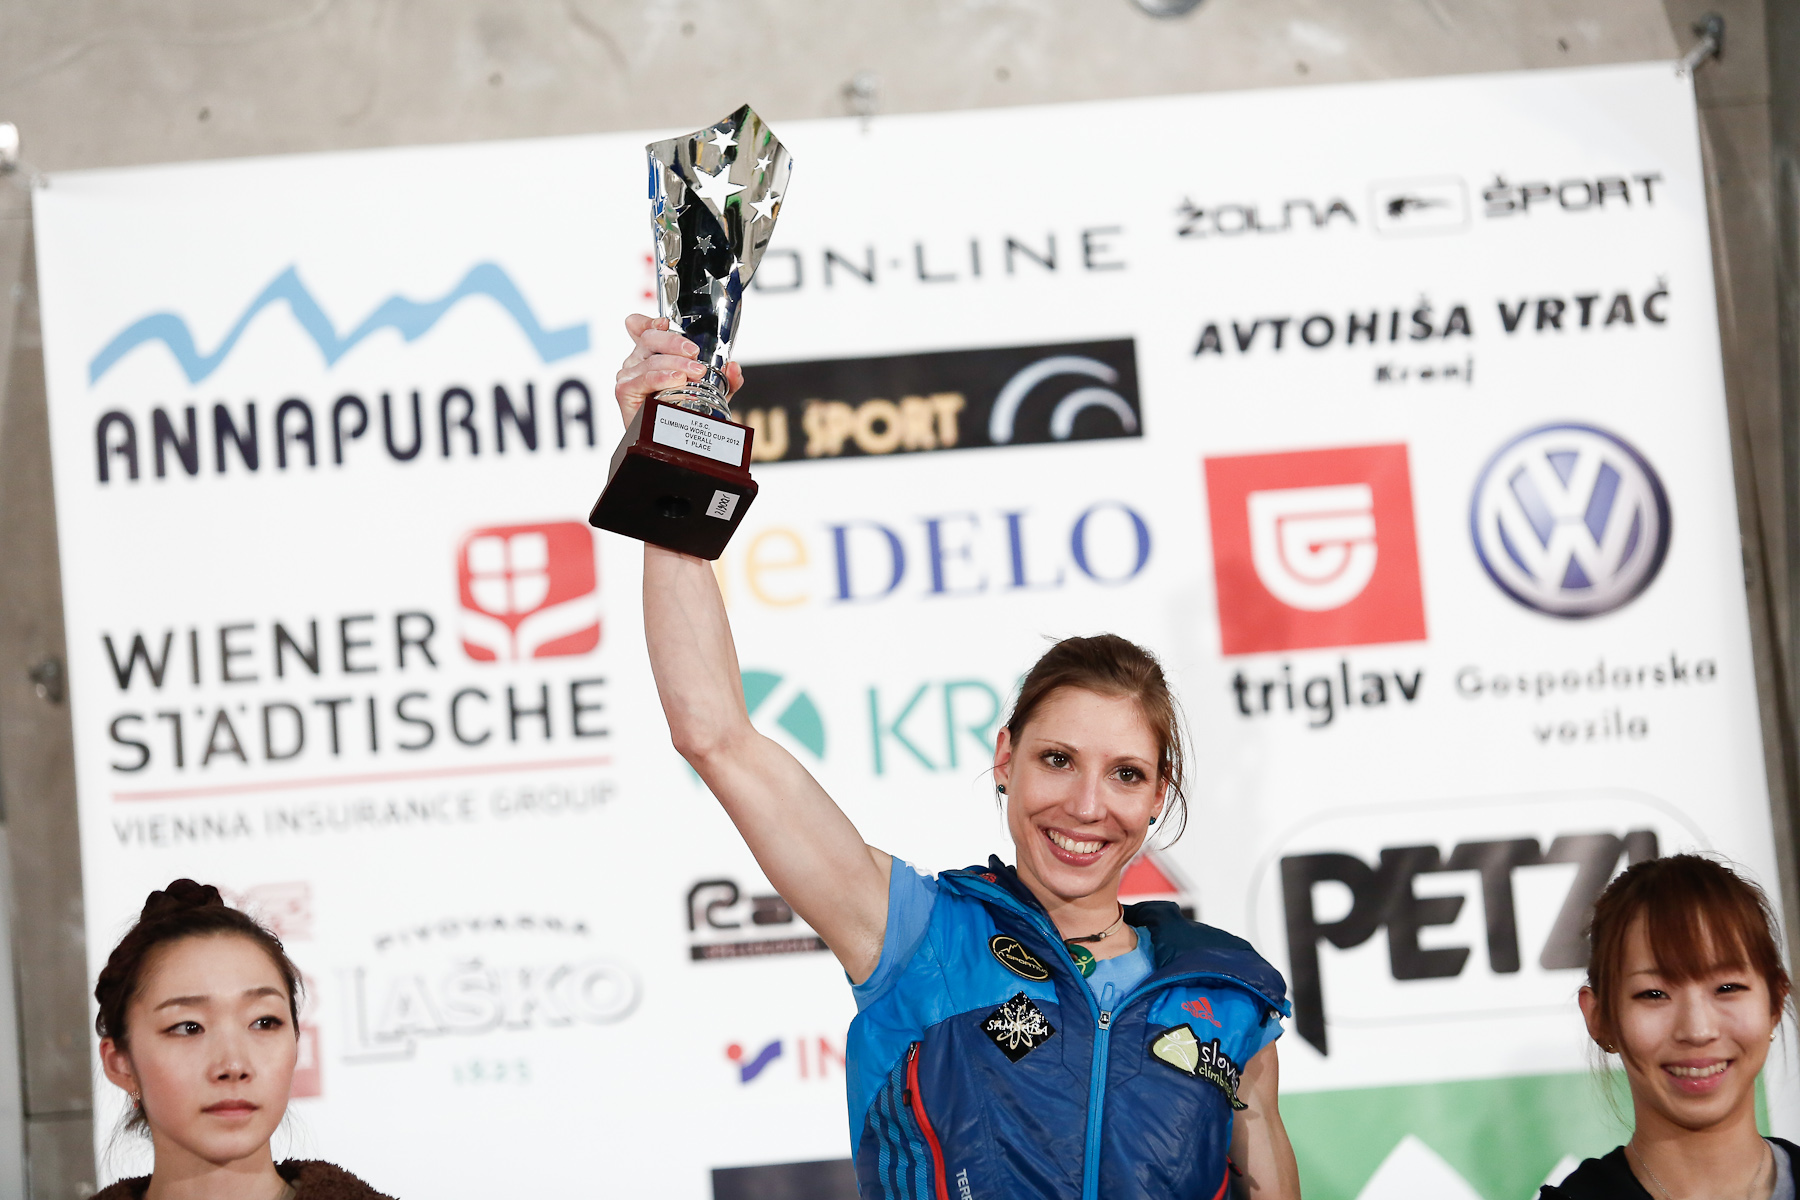 Mina Markovic (SLO) celebrates as overall winner of the IFSC climbing world cup in Kranj, Slovenia, on Nov 18, 2012.